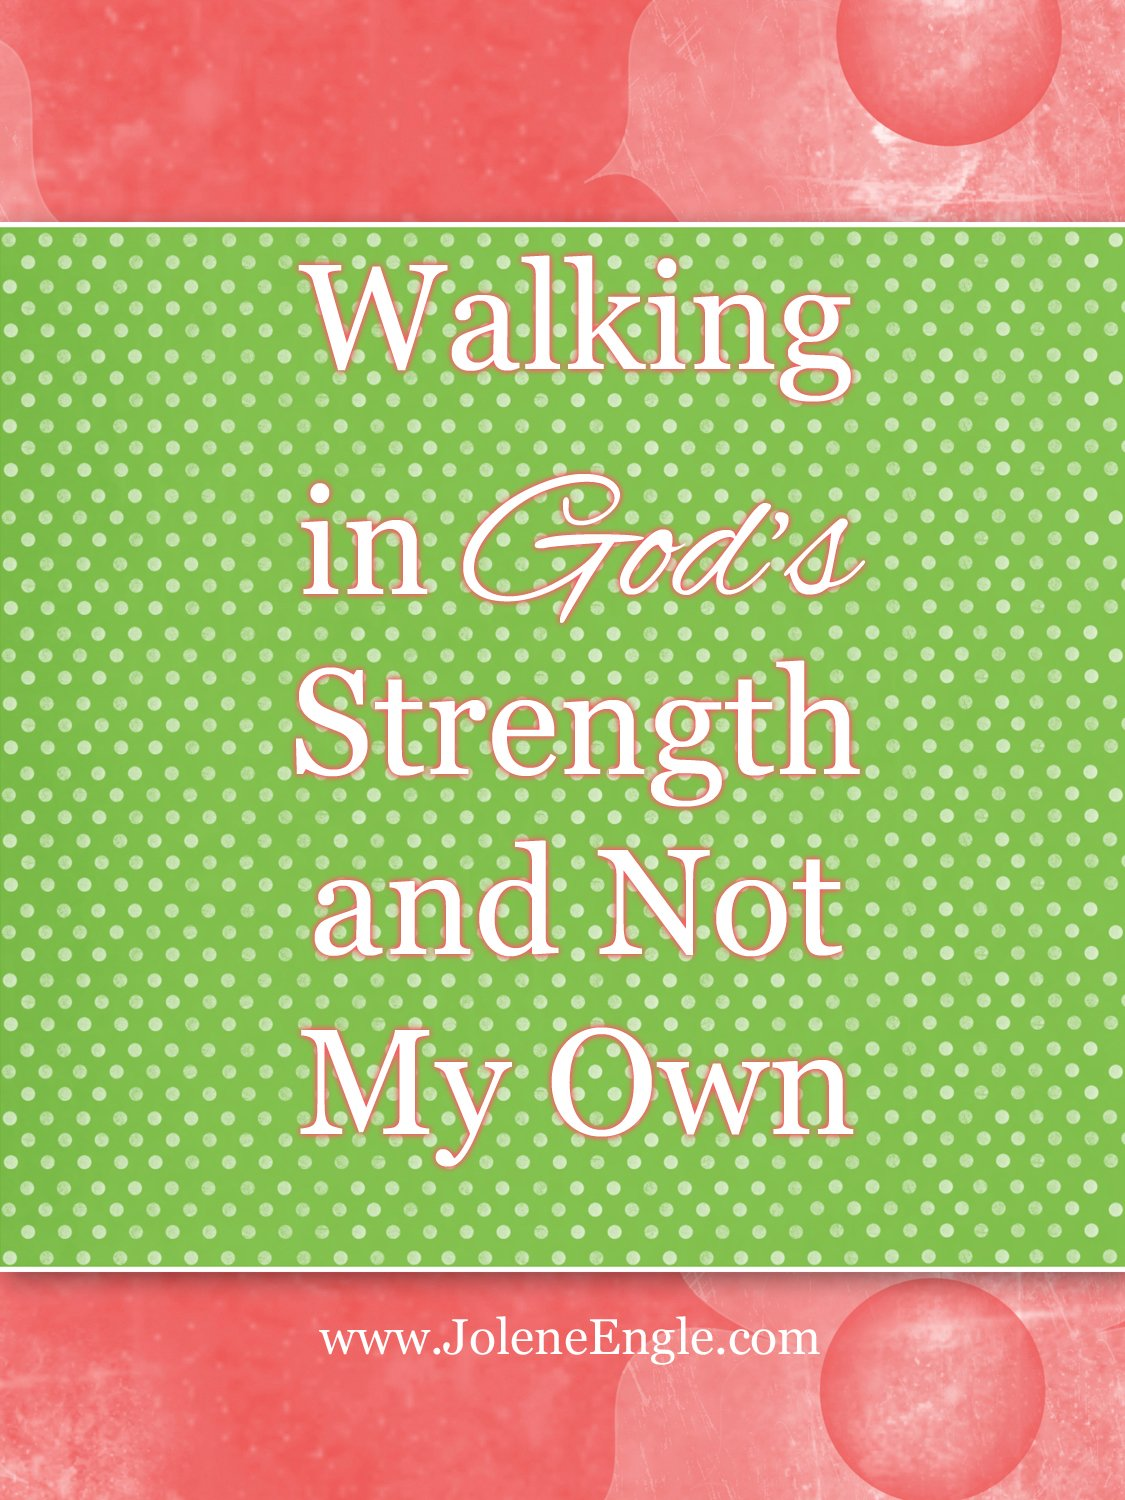 God Walk With me Walking in God's Strength And